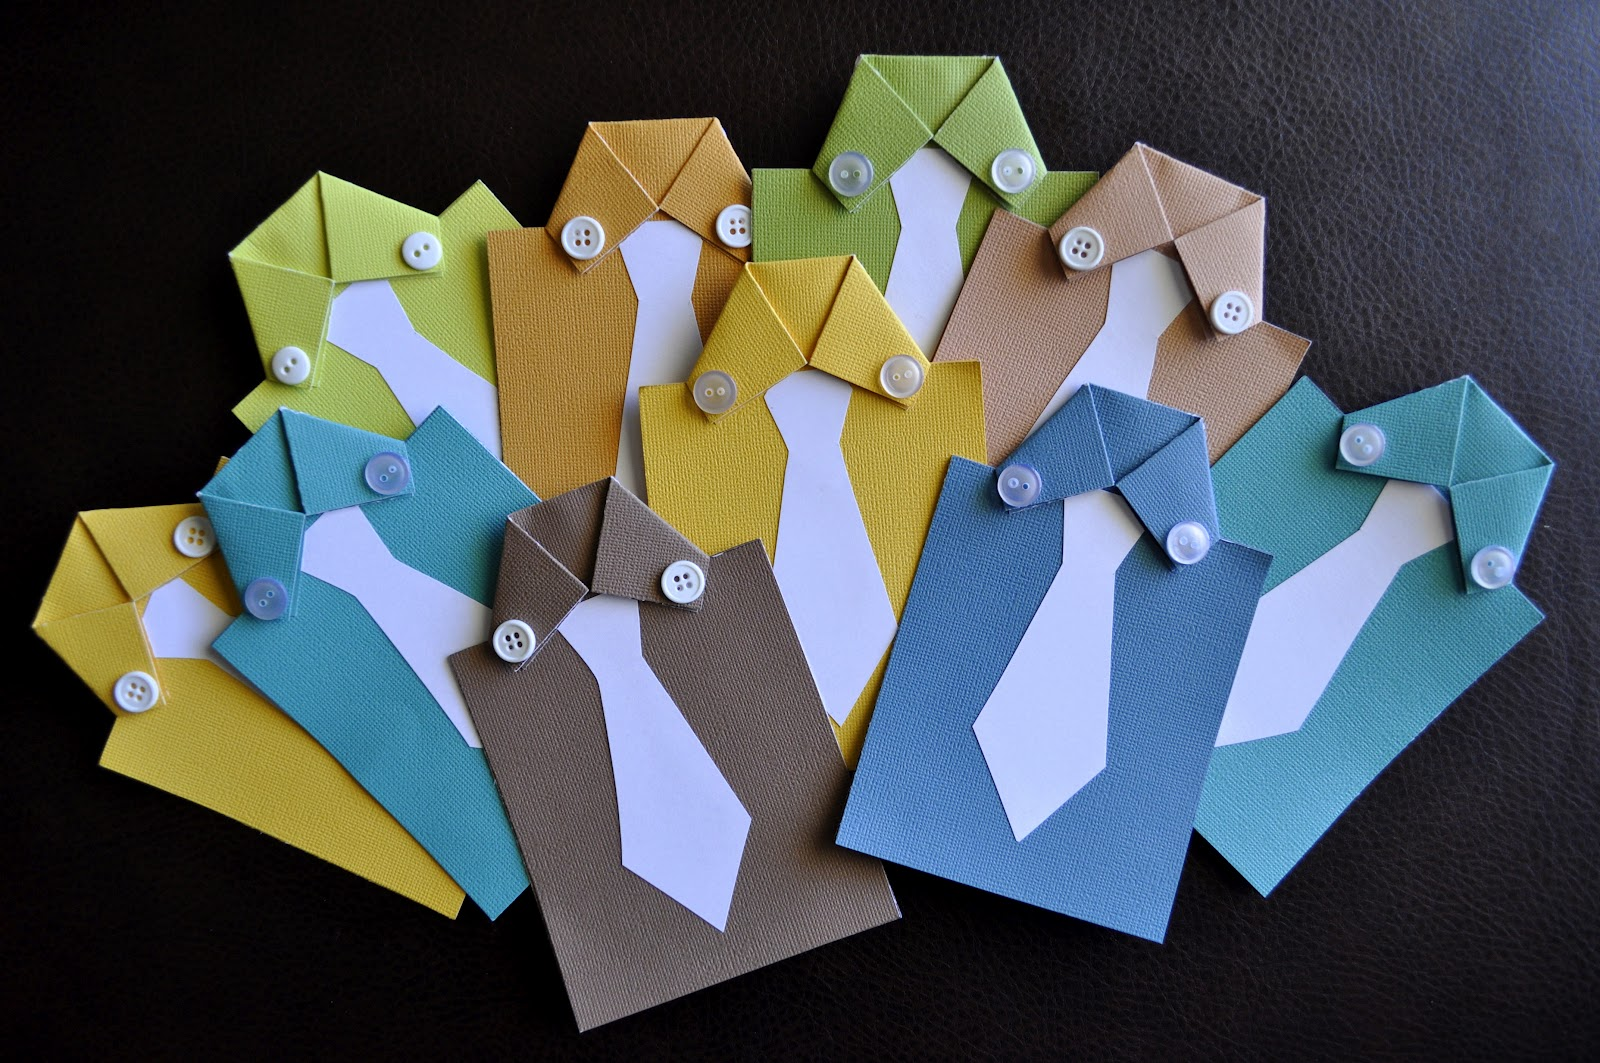 Shirt design card - I Left The Ties White On Purpose Because I Decided It Would Be Fun To Let The Kids Use Crayons To Design The Tie On The Front Of The Card For Their